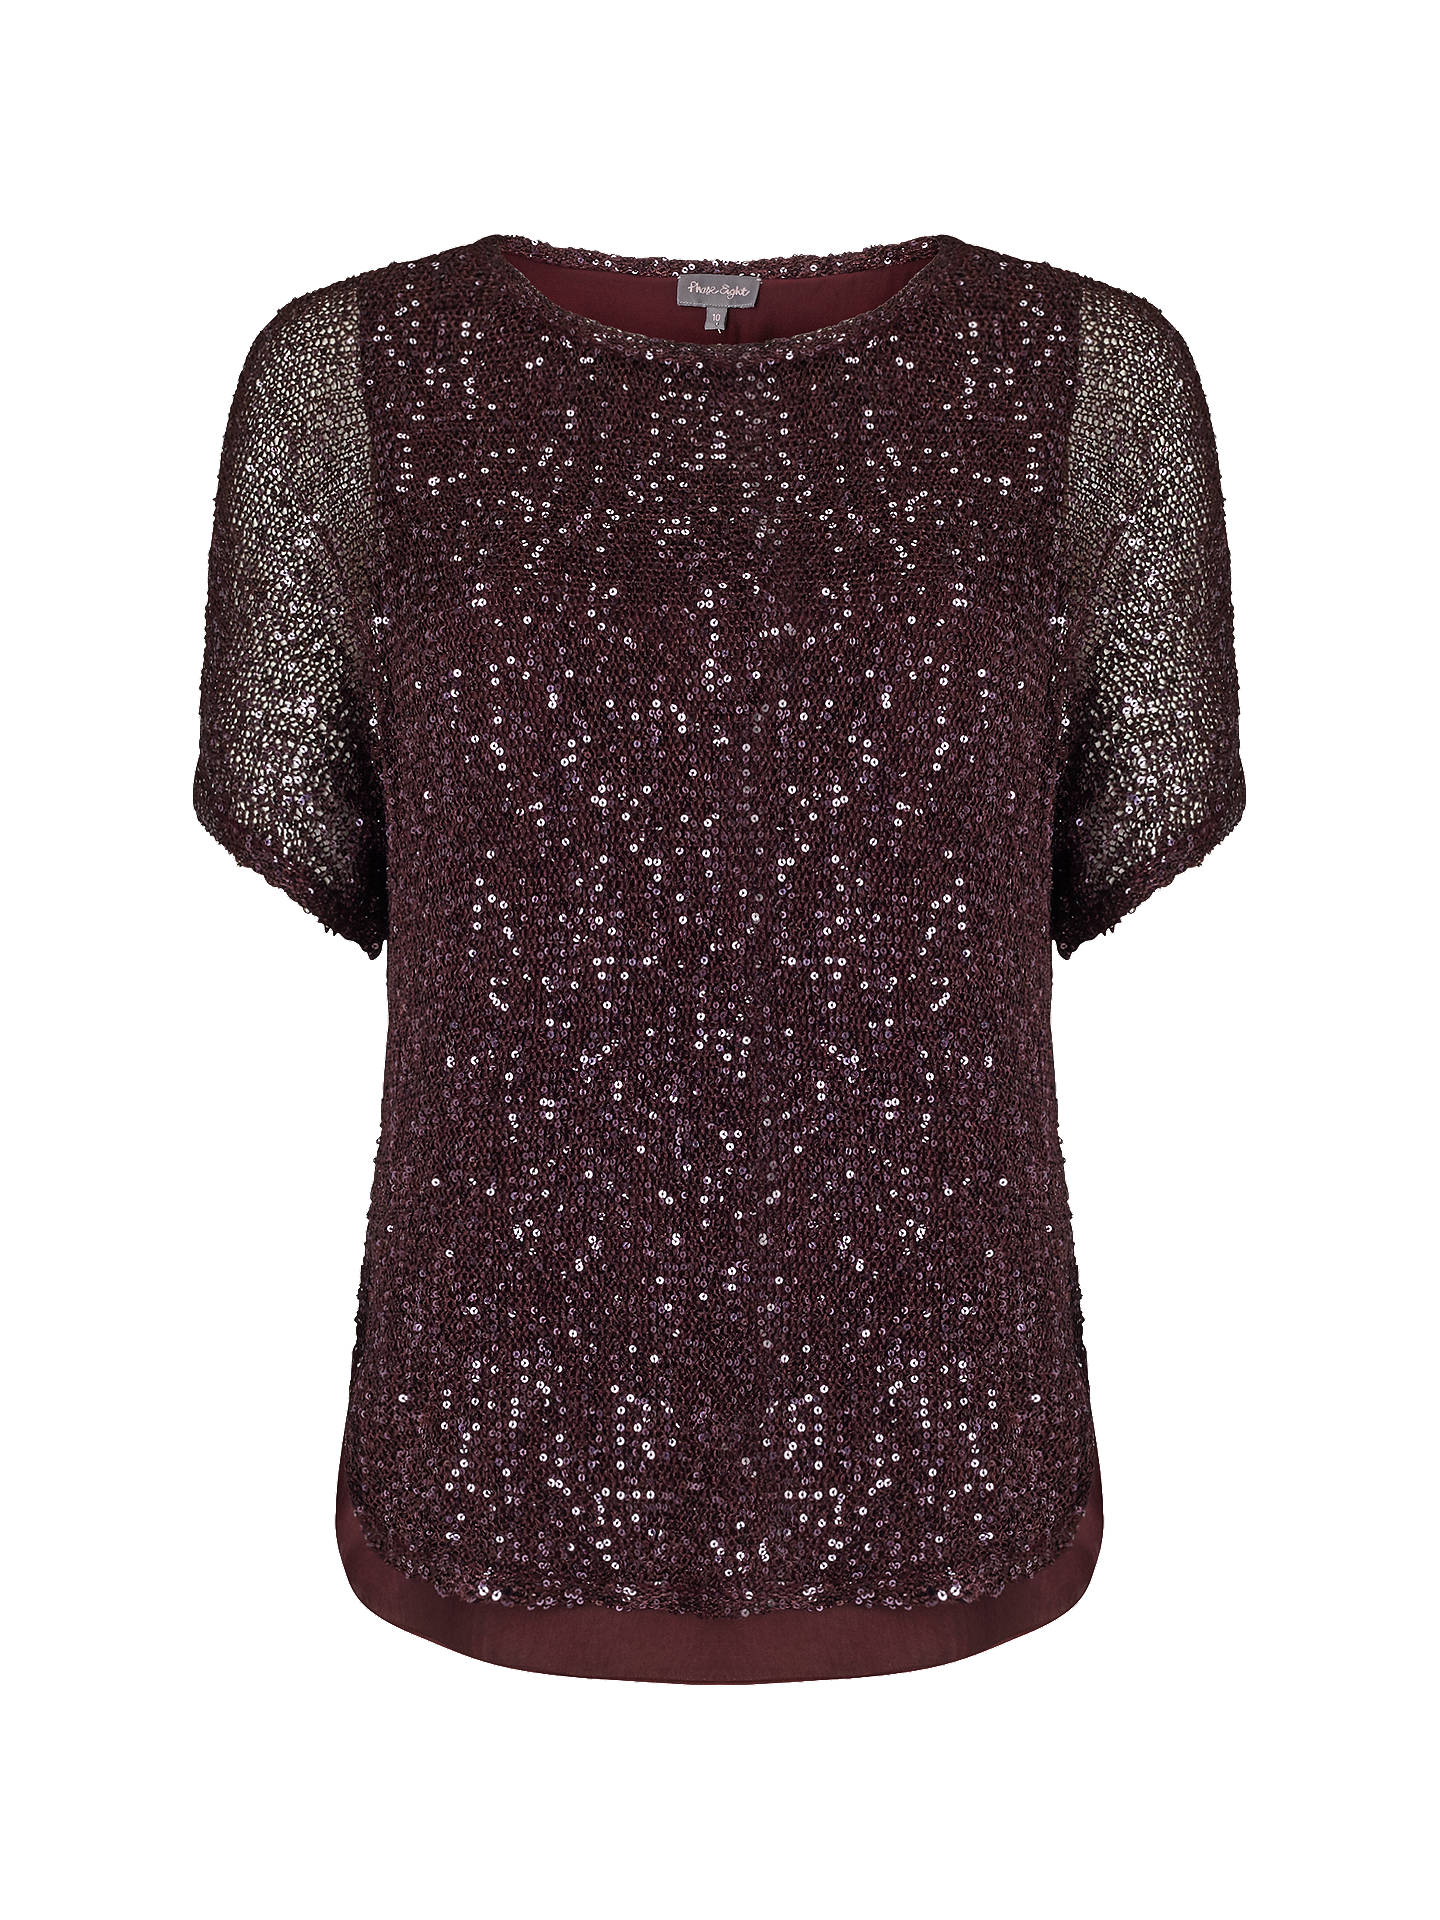 BuyPhase Eight Sequin Macey Knit Top, Port, XS Online at johnlewis.com